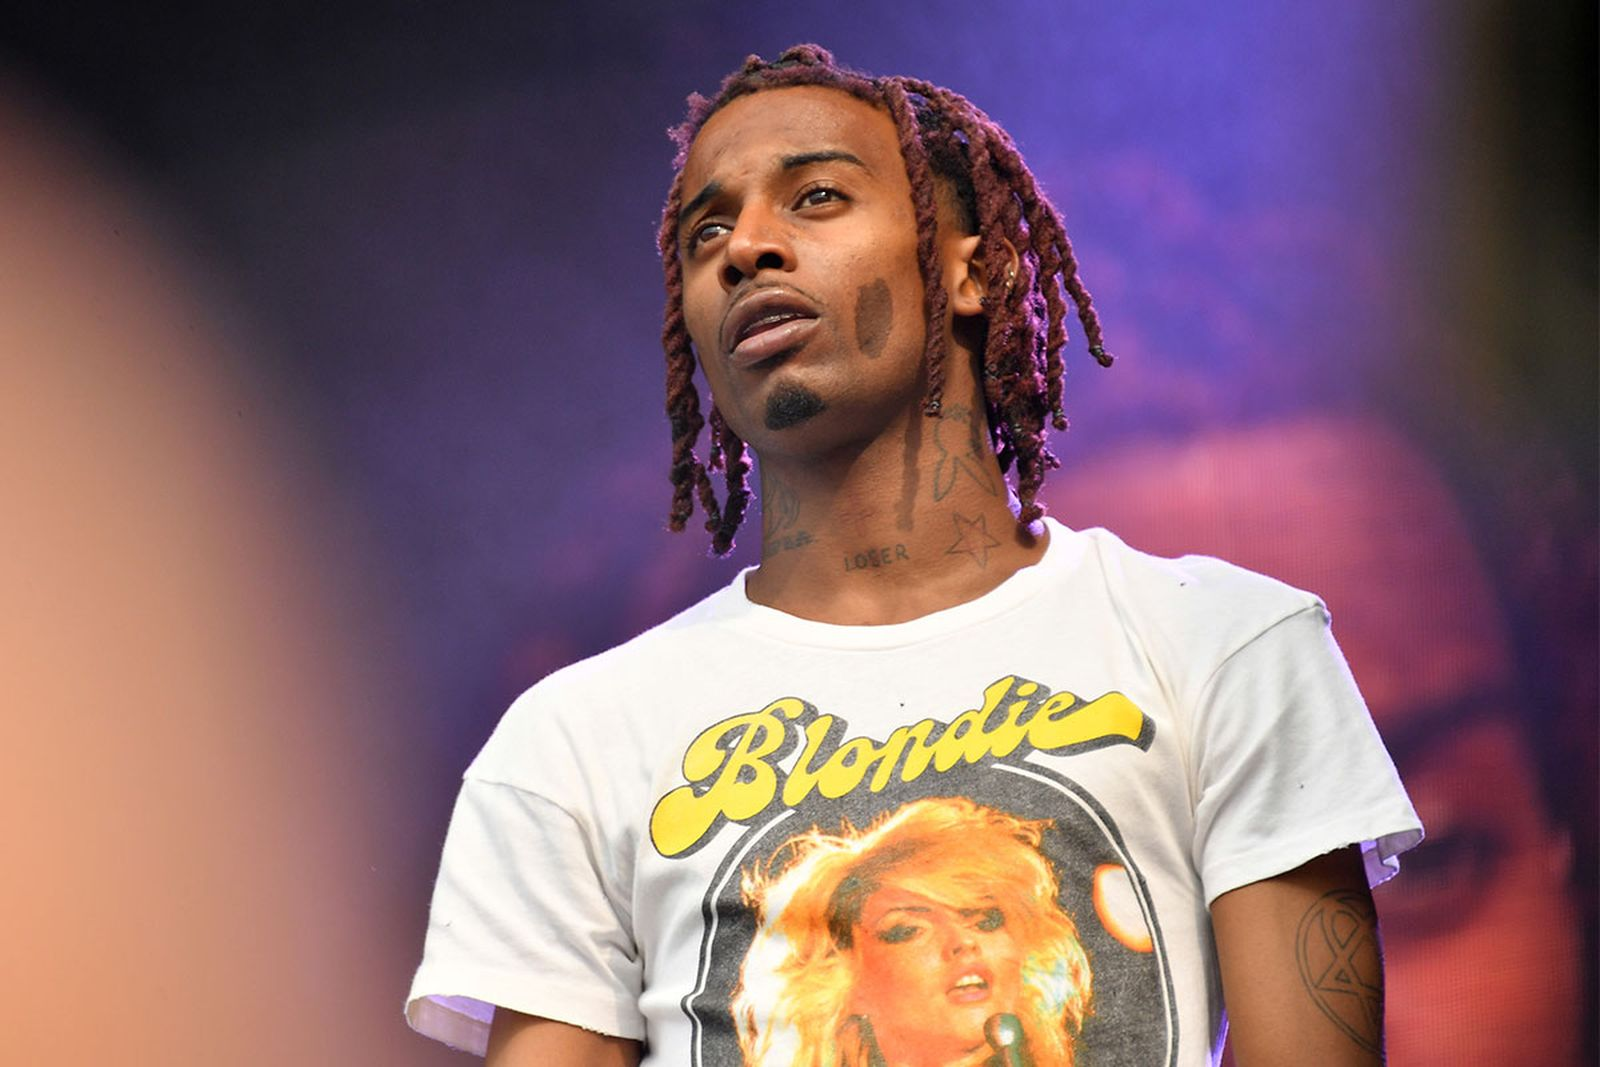 butterfly doors playboi carti leak Whole Lotta Red pi'erre bourne